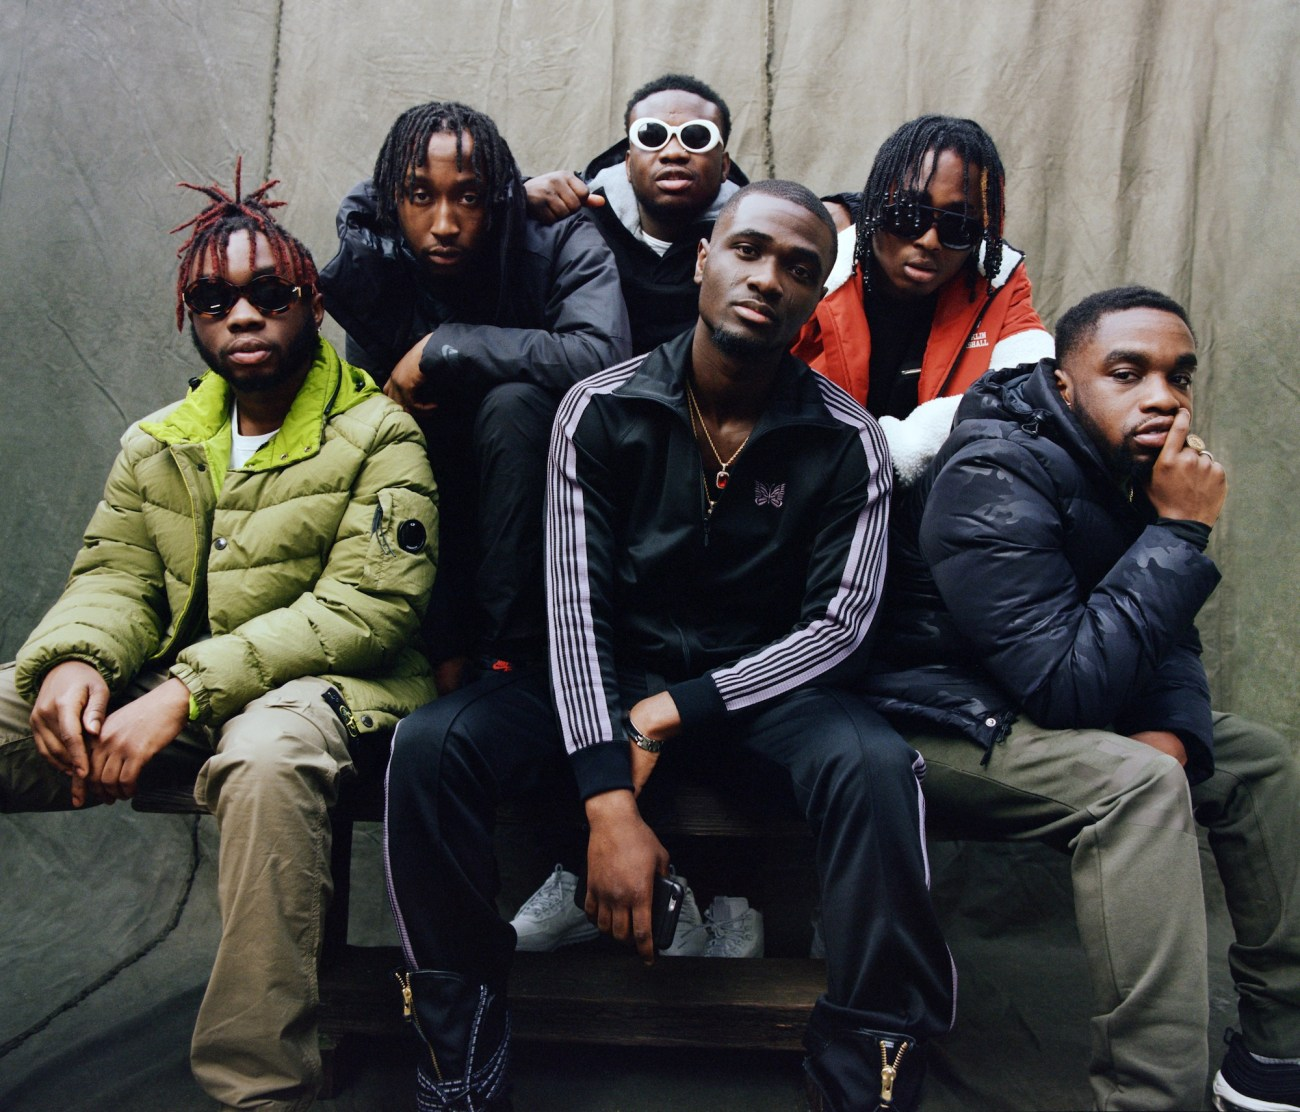 WPGM Interviews: NSG - Non Stop Grinding, Catching A Vibe And ...